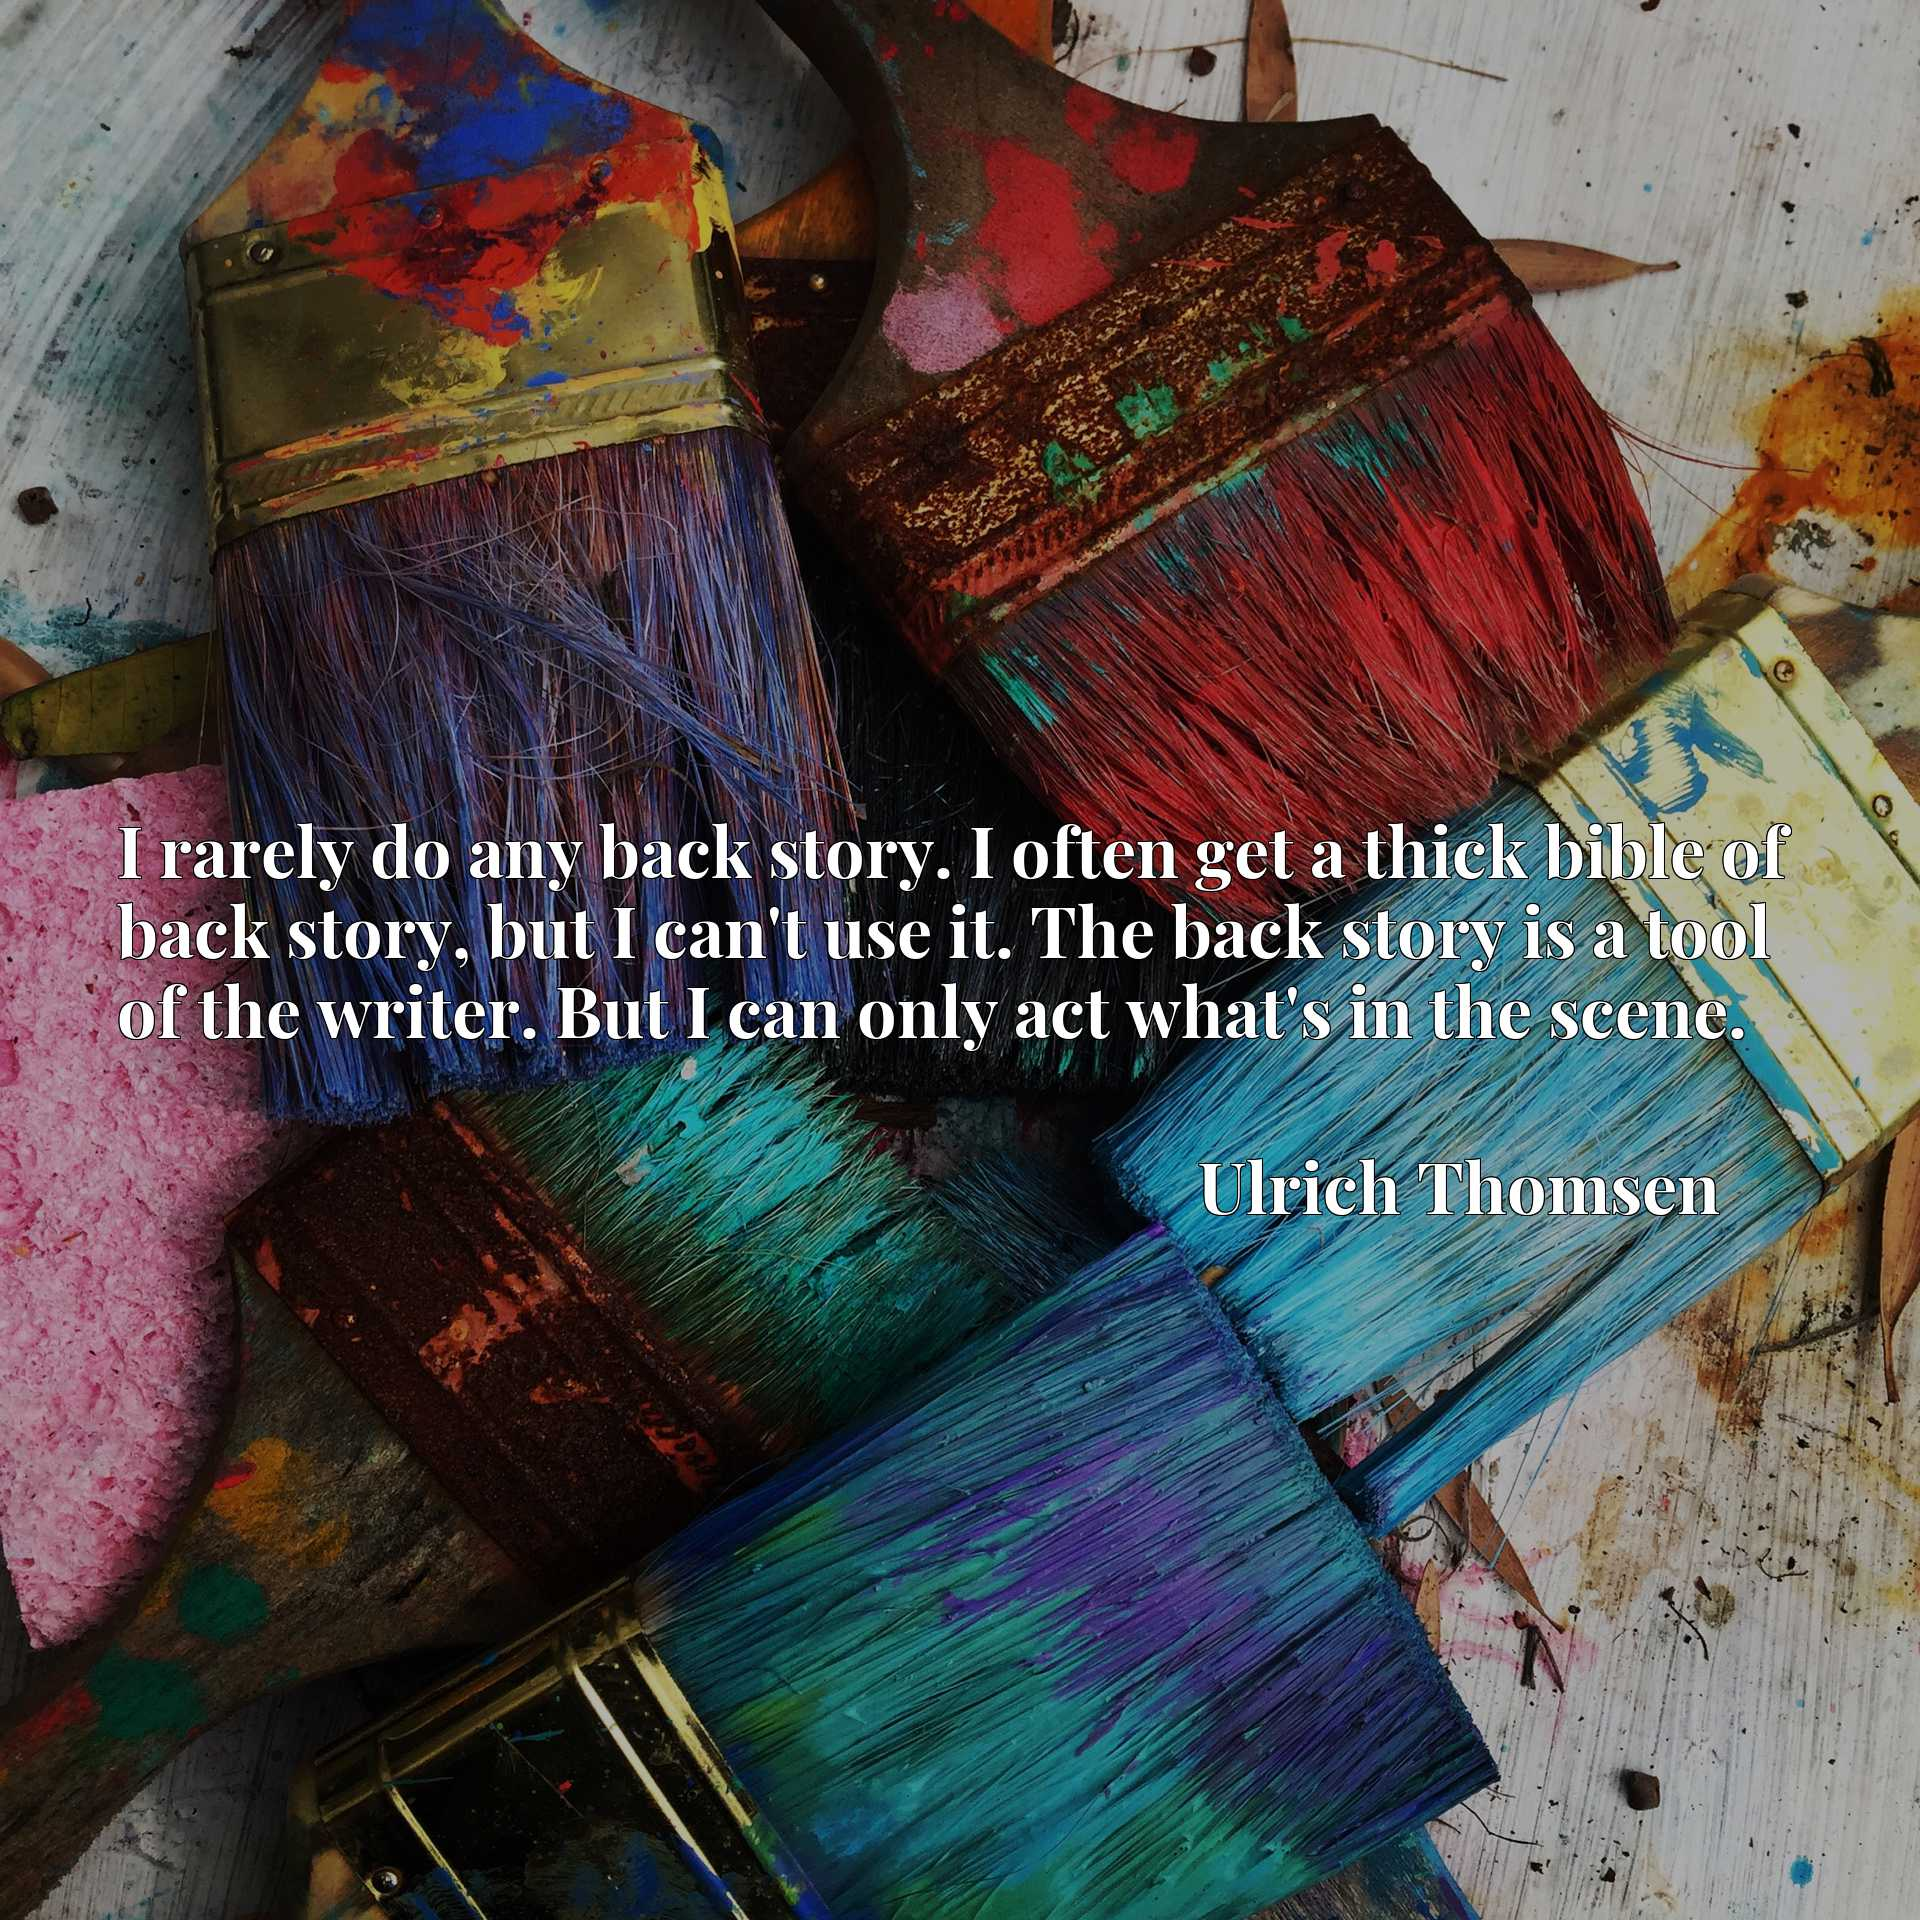 I rarely do any back story. I often get a thick bible of back story, but I can't use it. The back story is a tool of the writer. But I can only act what's in the scene.